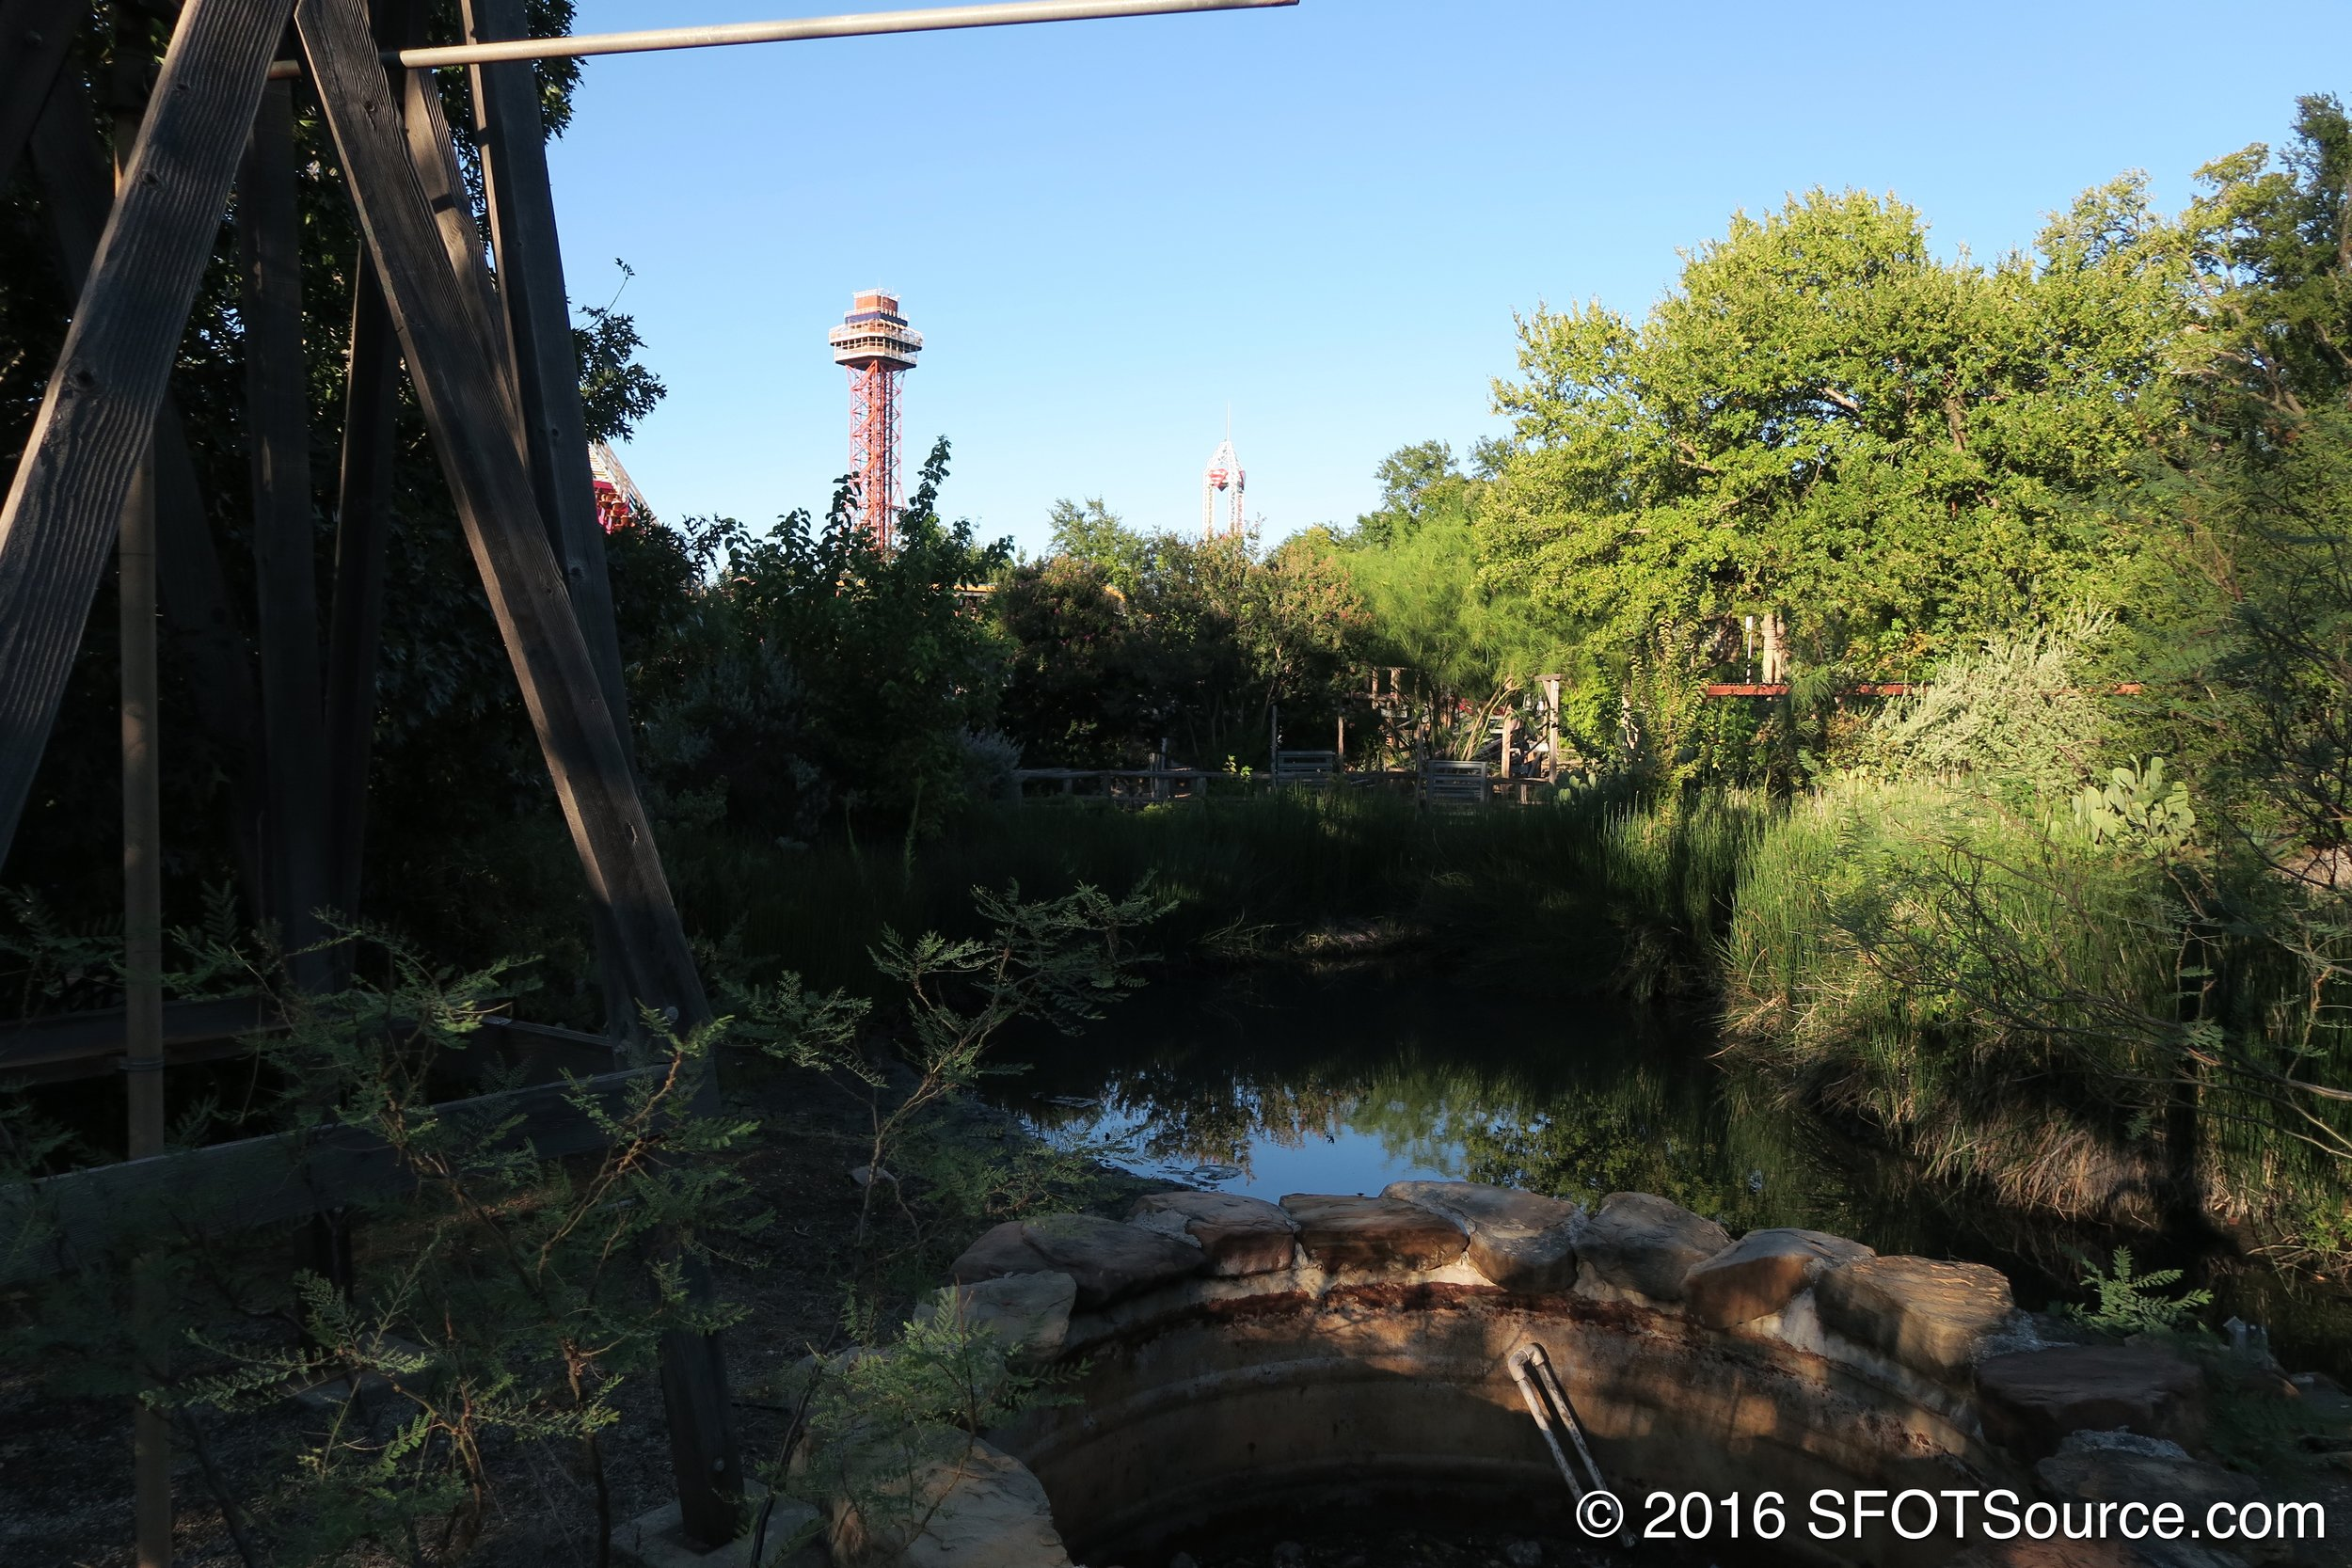 A look at Texas from Titan's queue line.